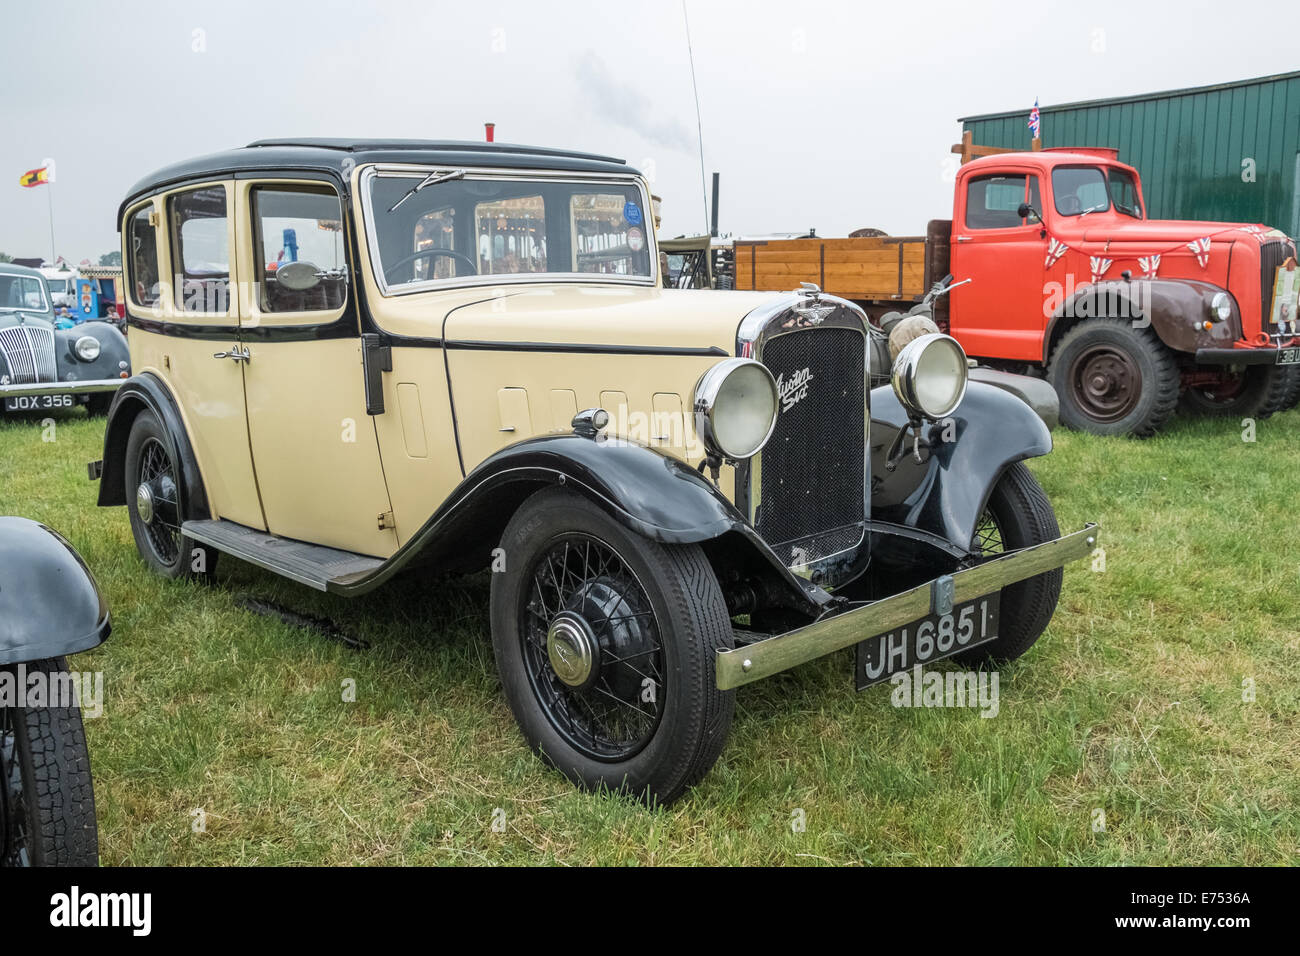 Vintage British Austin Six motor vehicle on display at a reenactment event, Leicestershire, England. - Stock Image